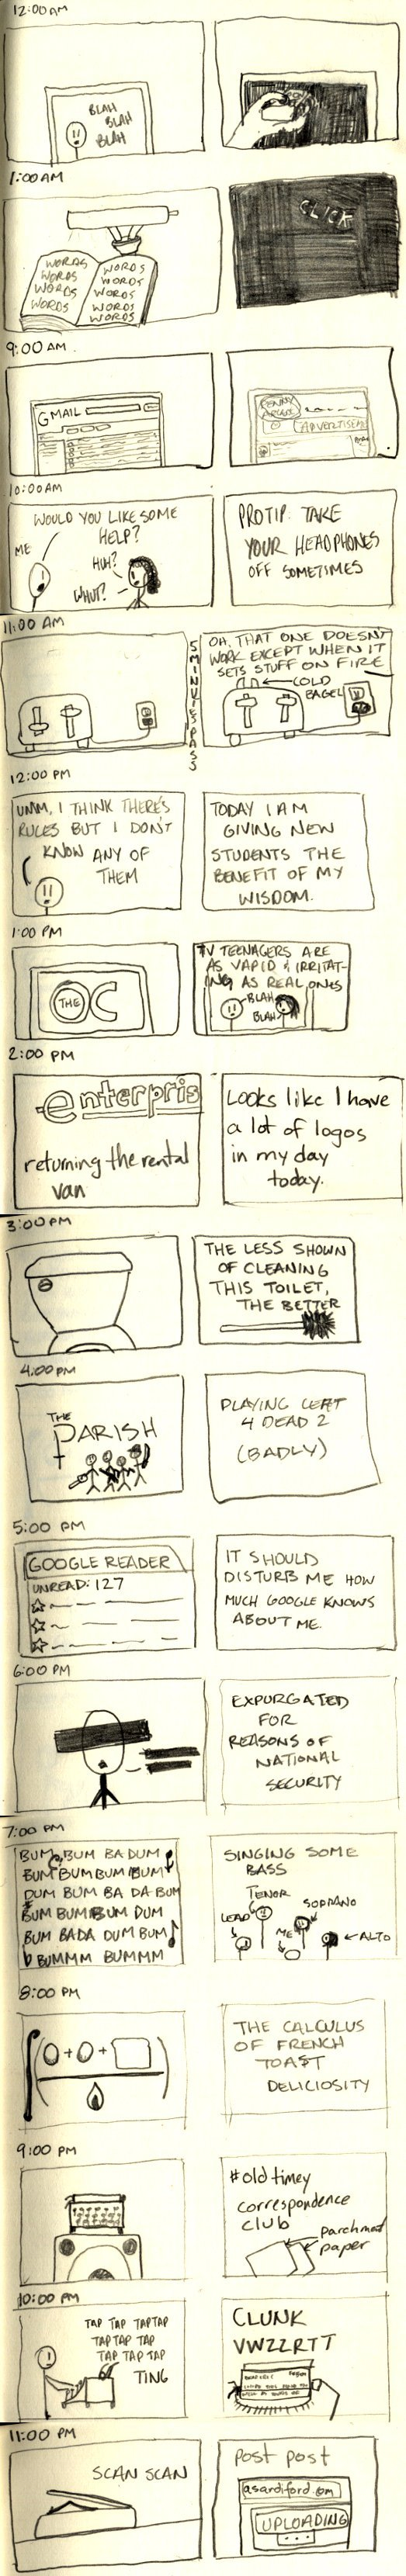 2010-02-01-hourly-comics-day.jpg